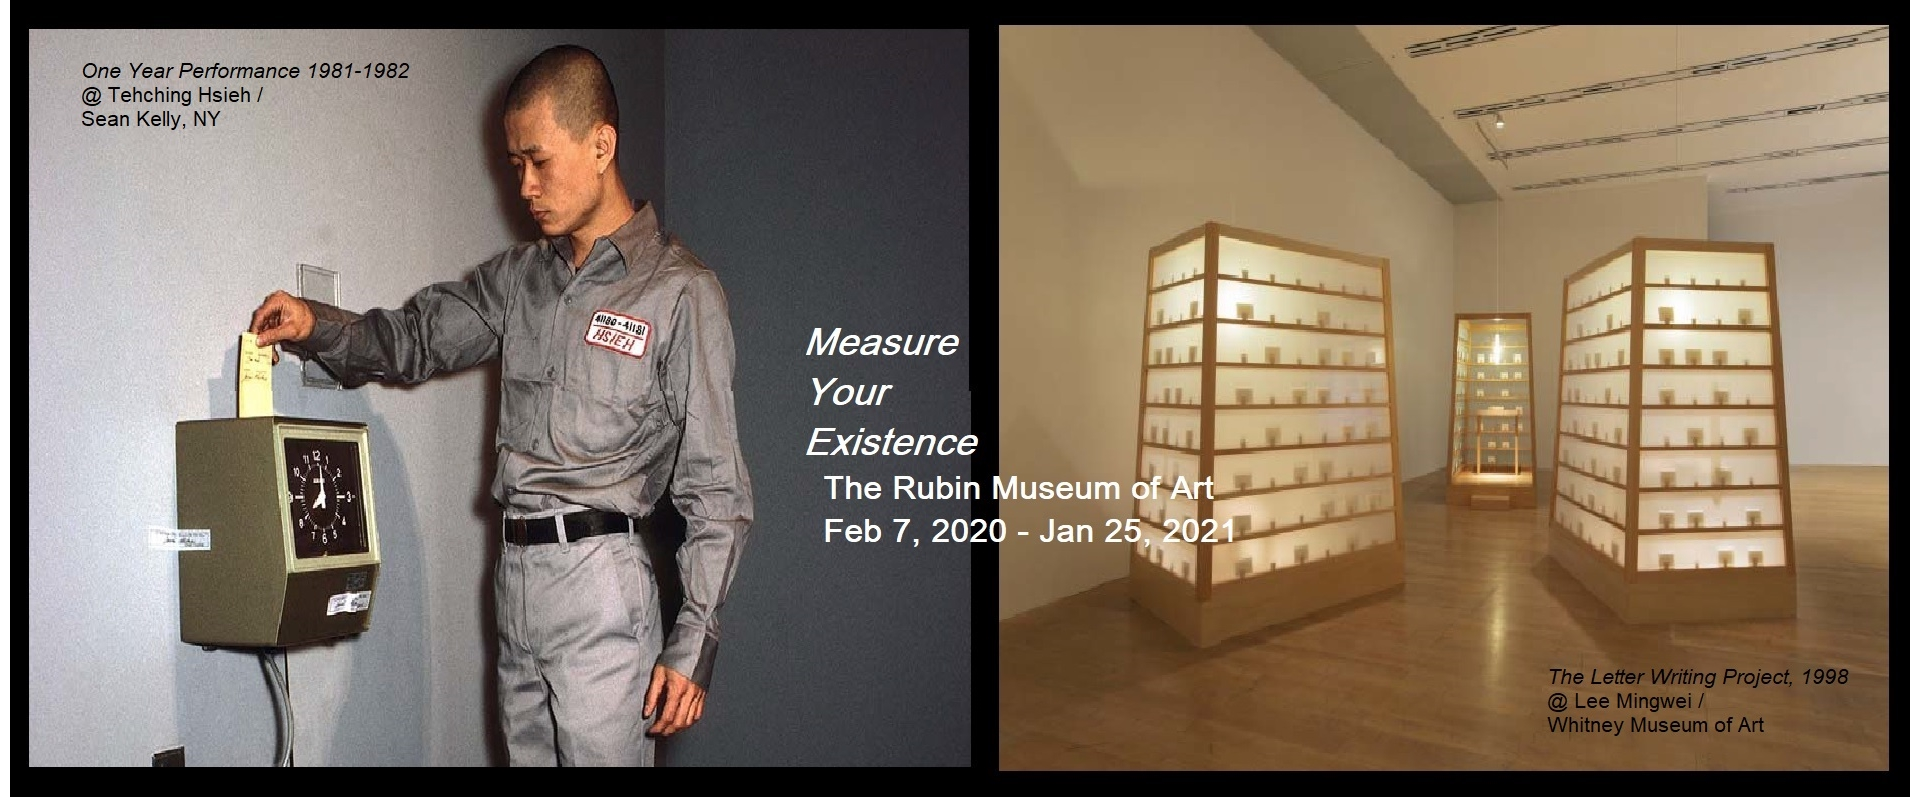 Measure your Existence at The Rubin Museum of Art[另開新視窗]